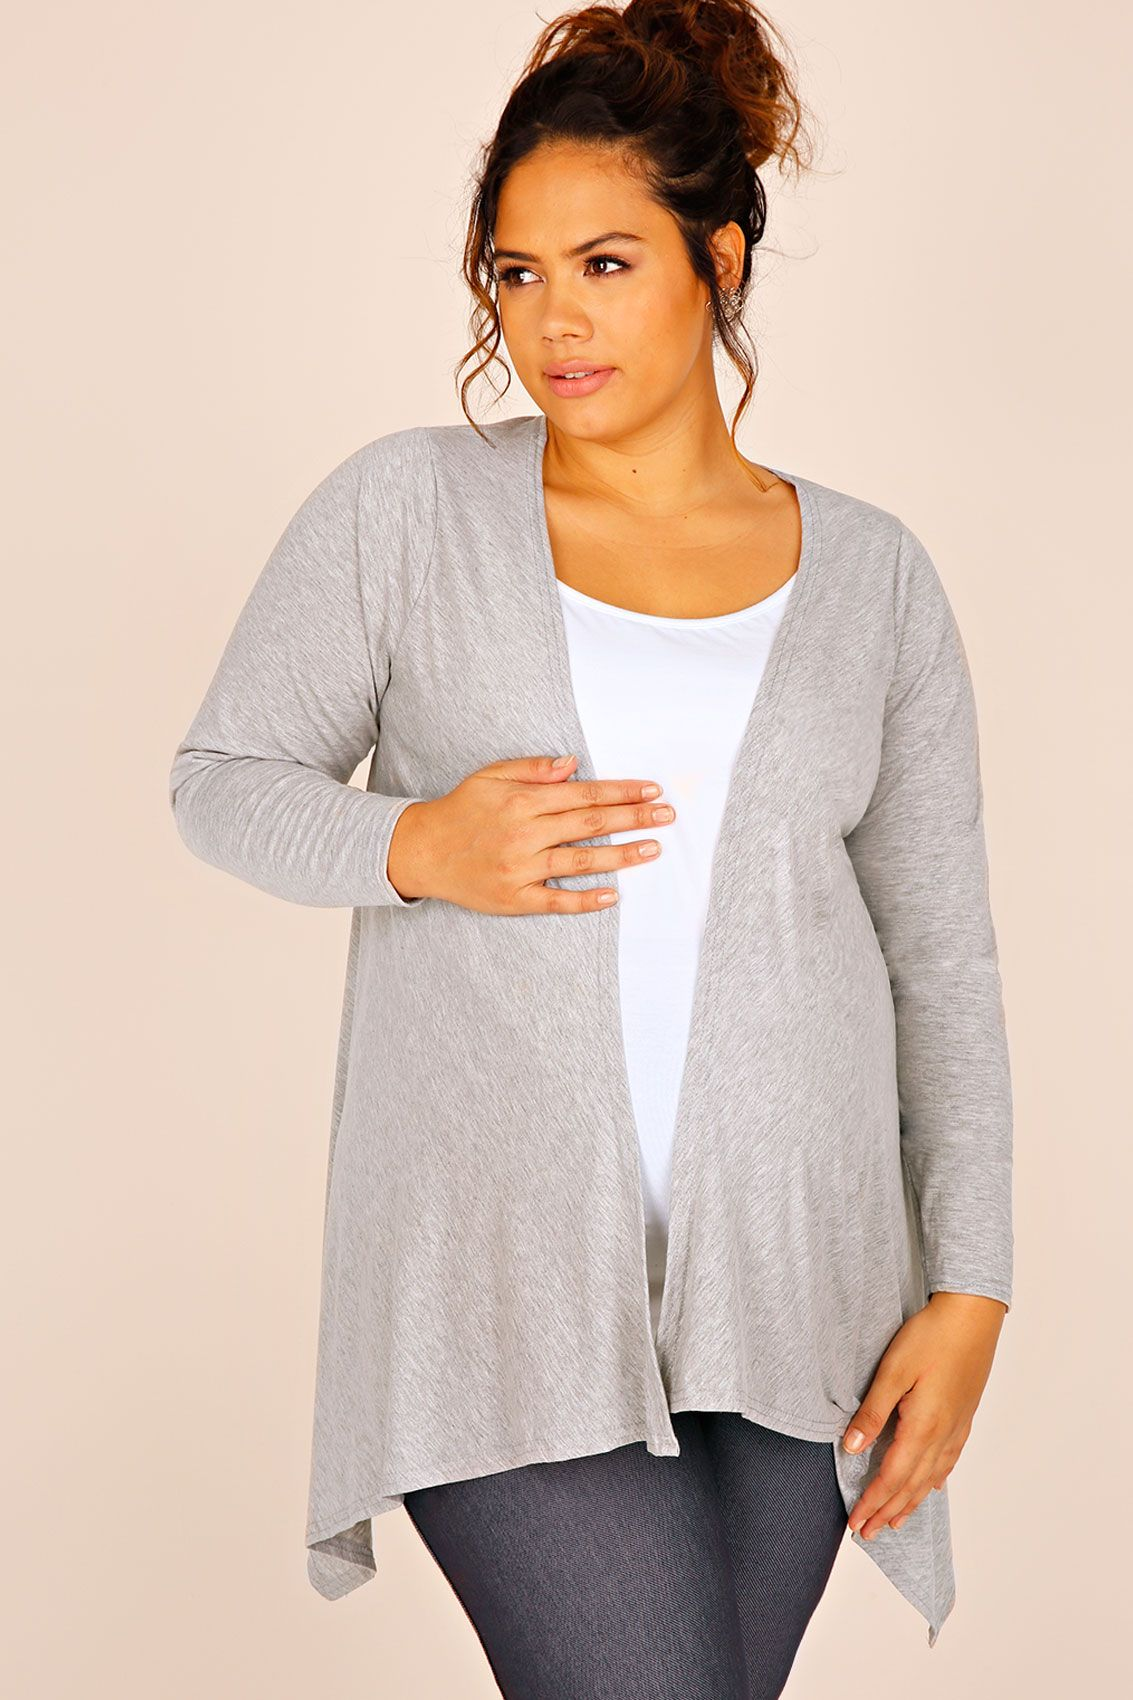 BUMP IT UP MATERNITY Grey Waterfall Cardigan ($44.00) | Ladies ...